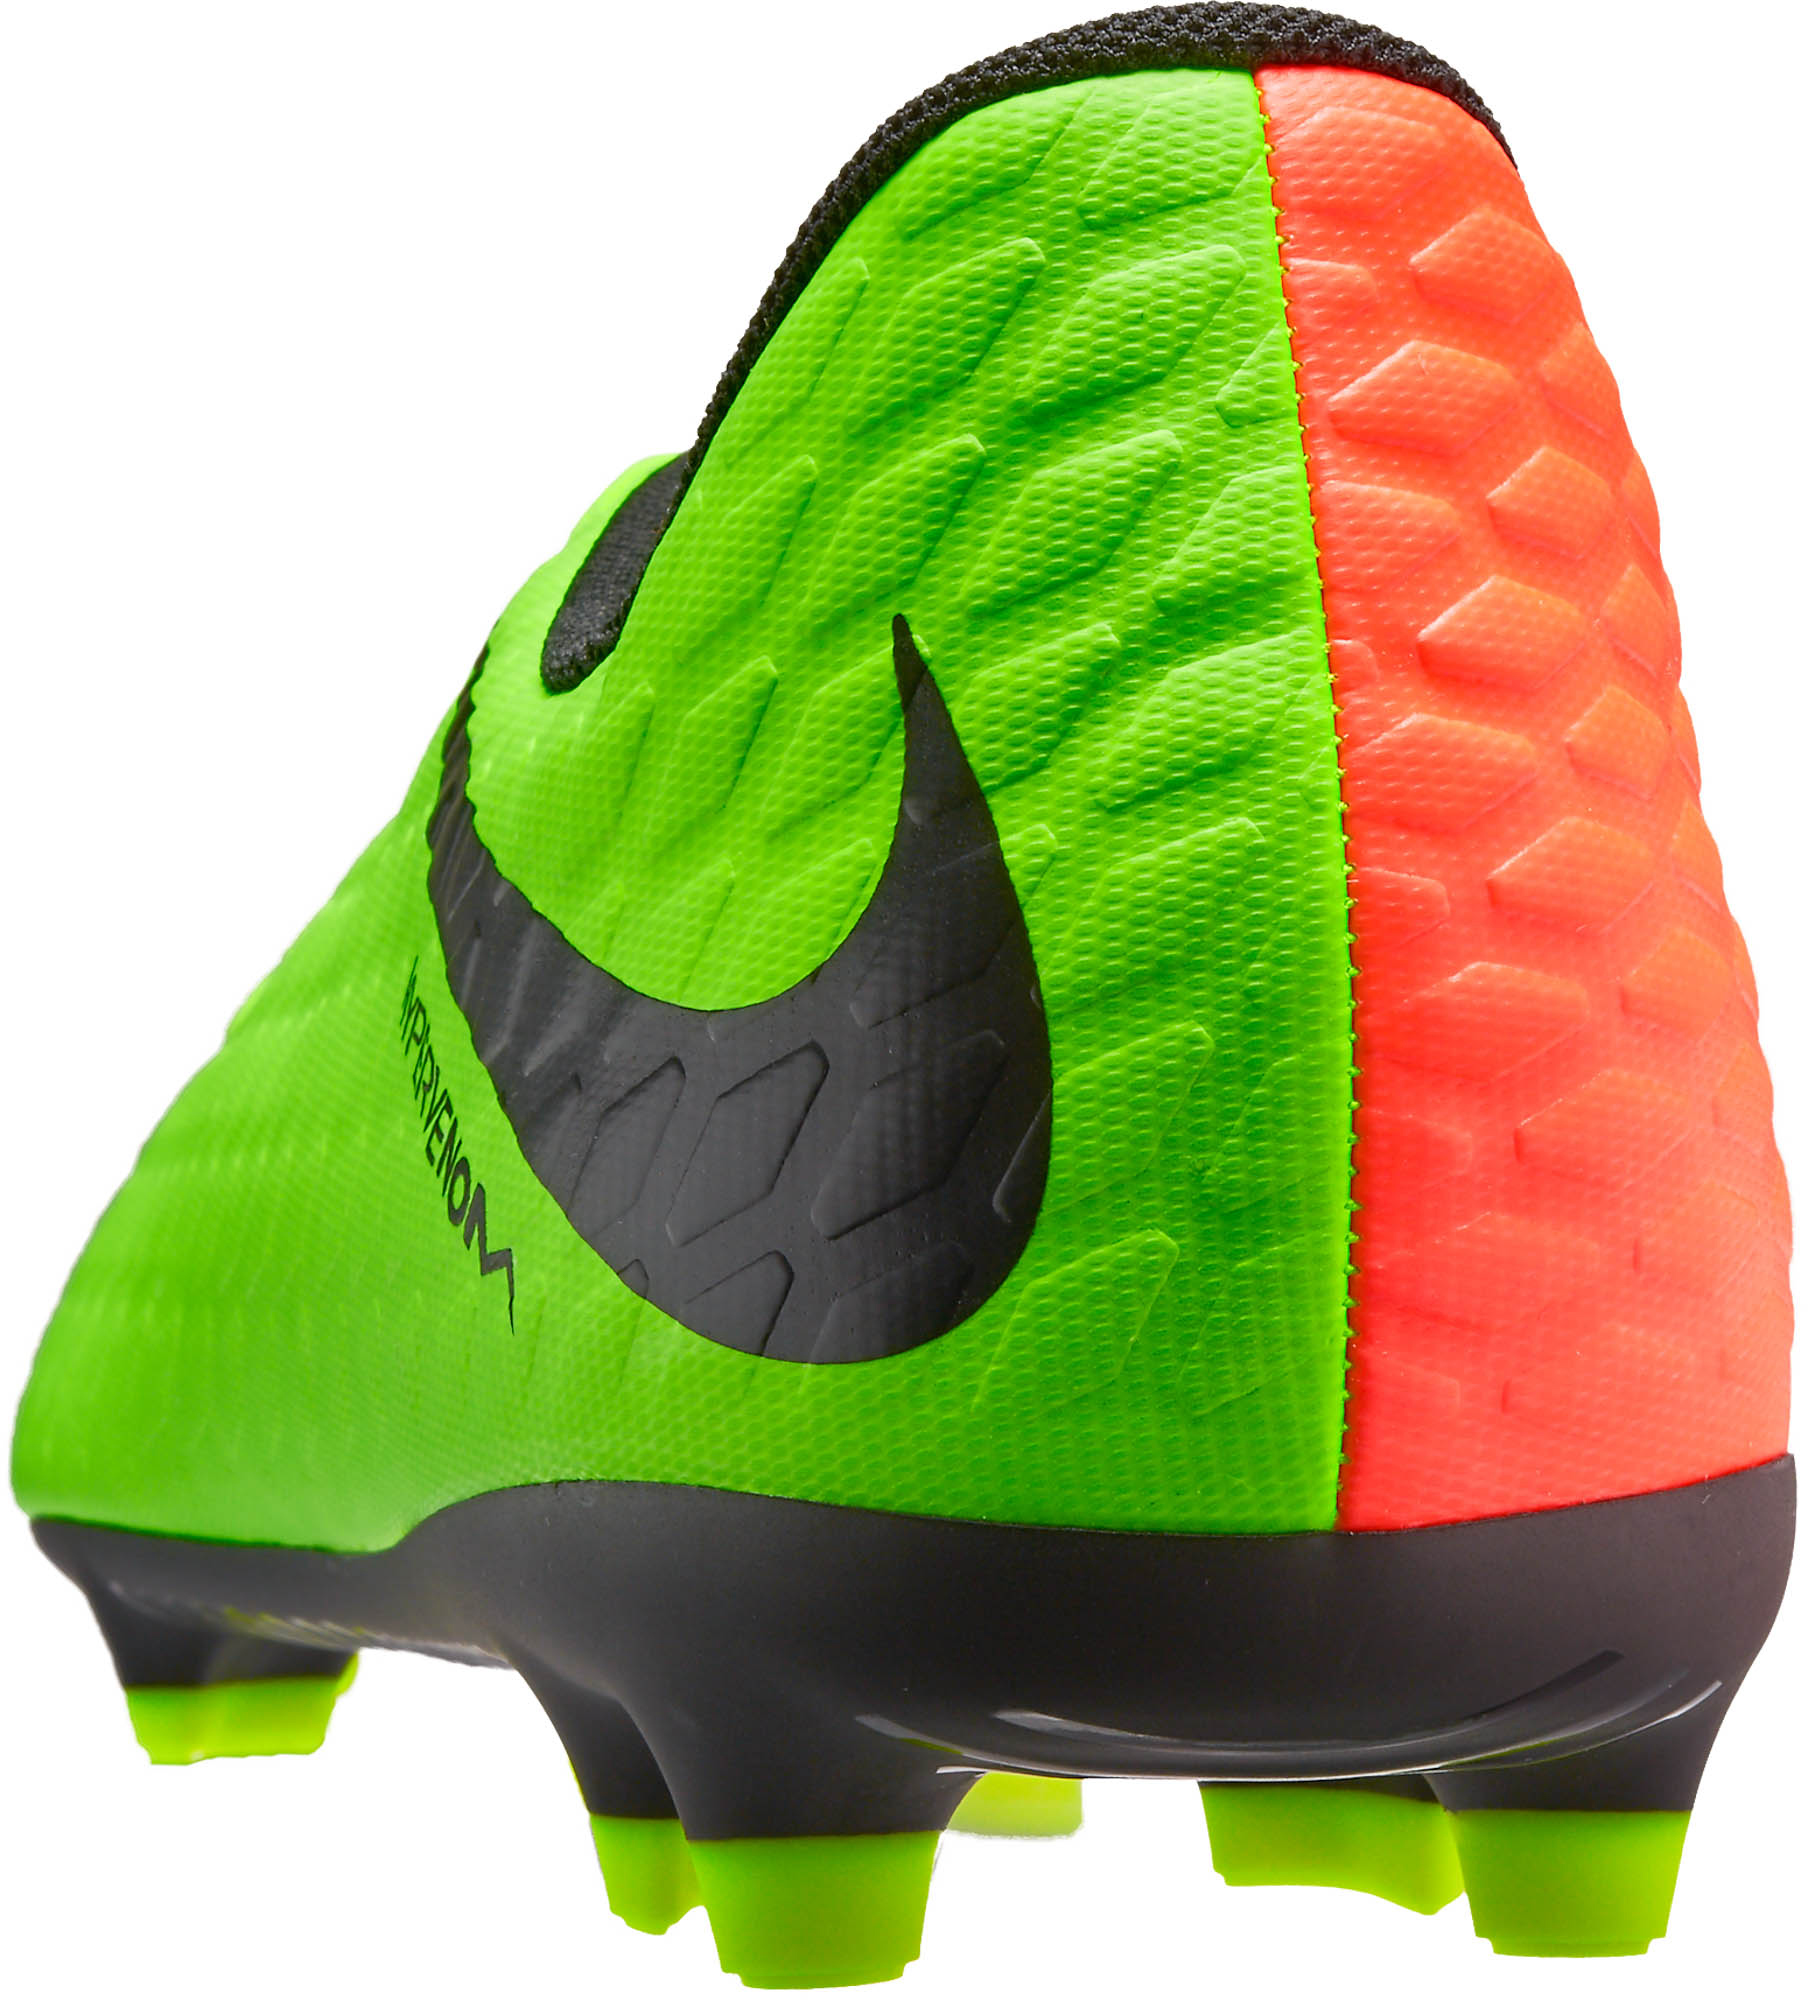 big sale f9c48 f19a2 Nike Kids Hypervenom Phade III FG Soccer Cleats - Electric ...